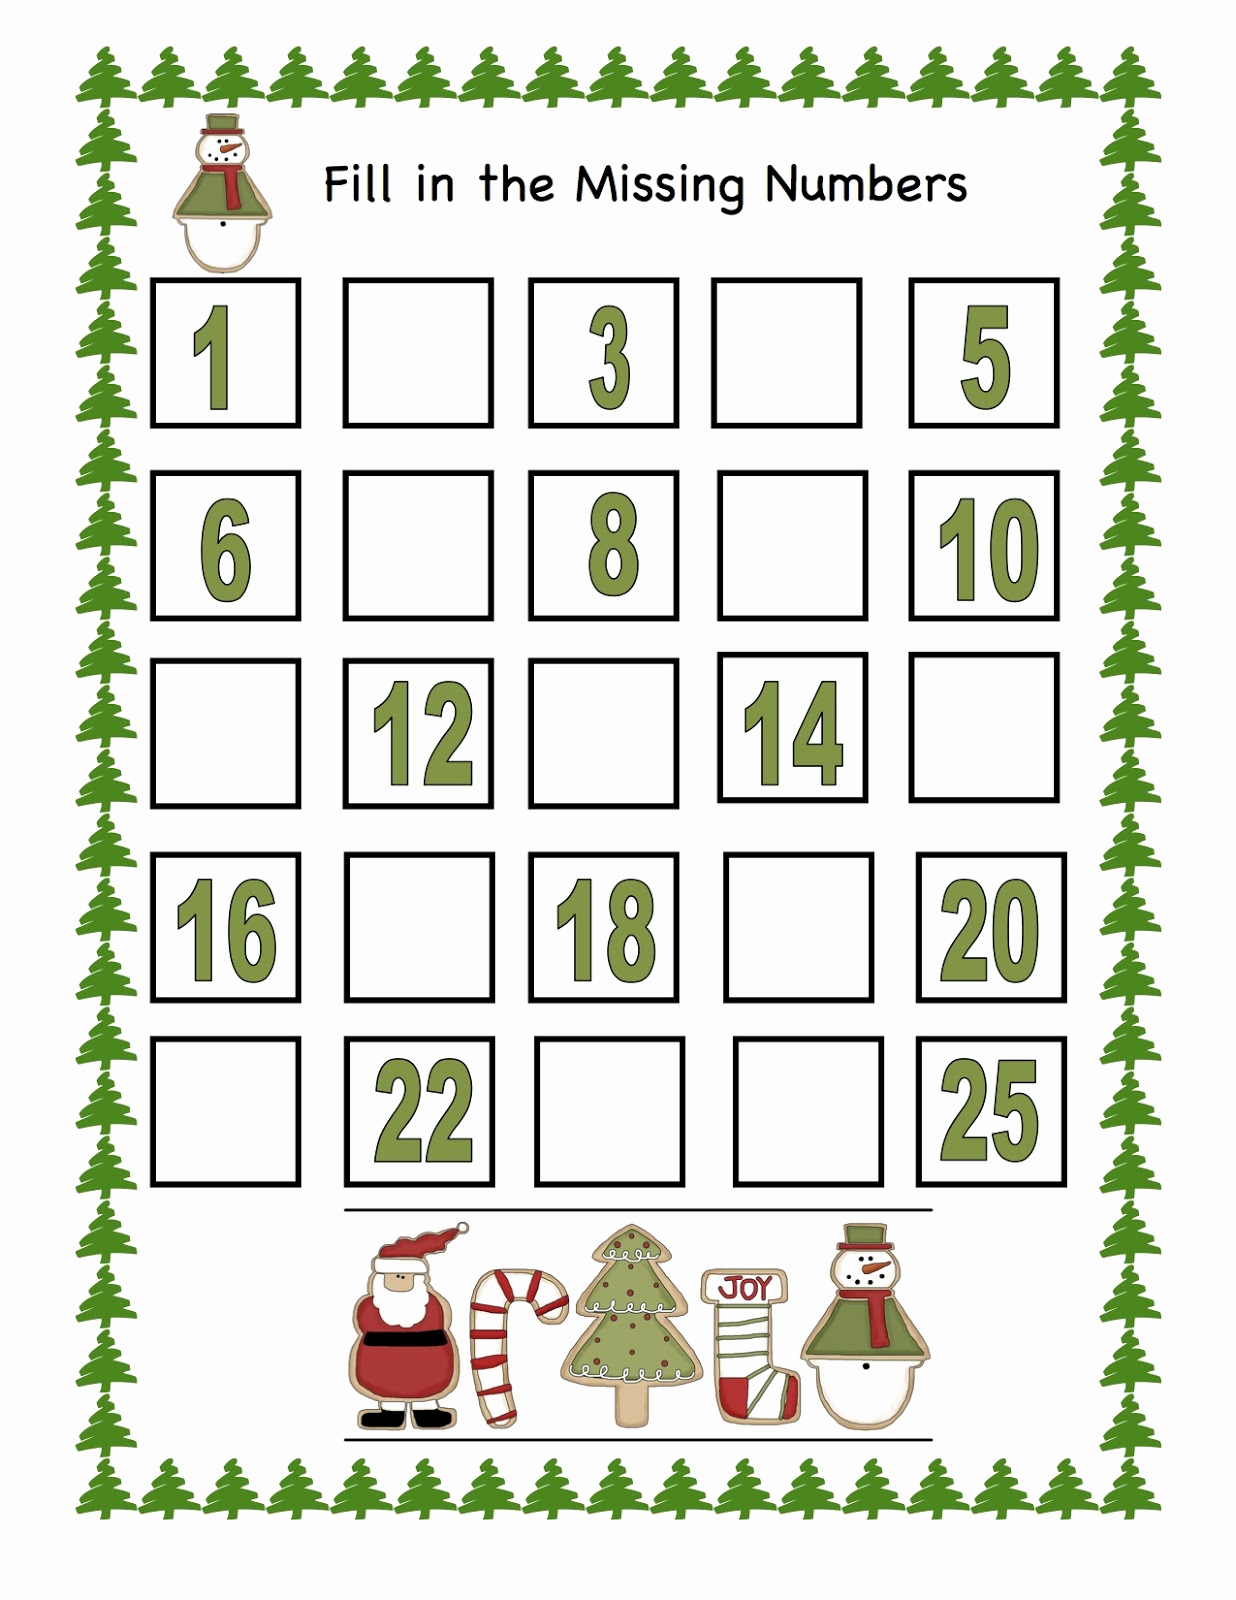 Missing Number Worksheets Kindergarten Awesome Missing Number Worksheet New 200 Missing Number Printable